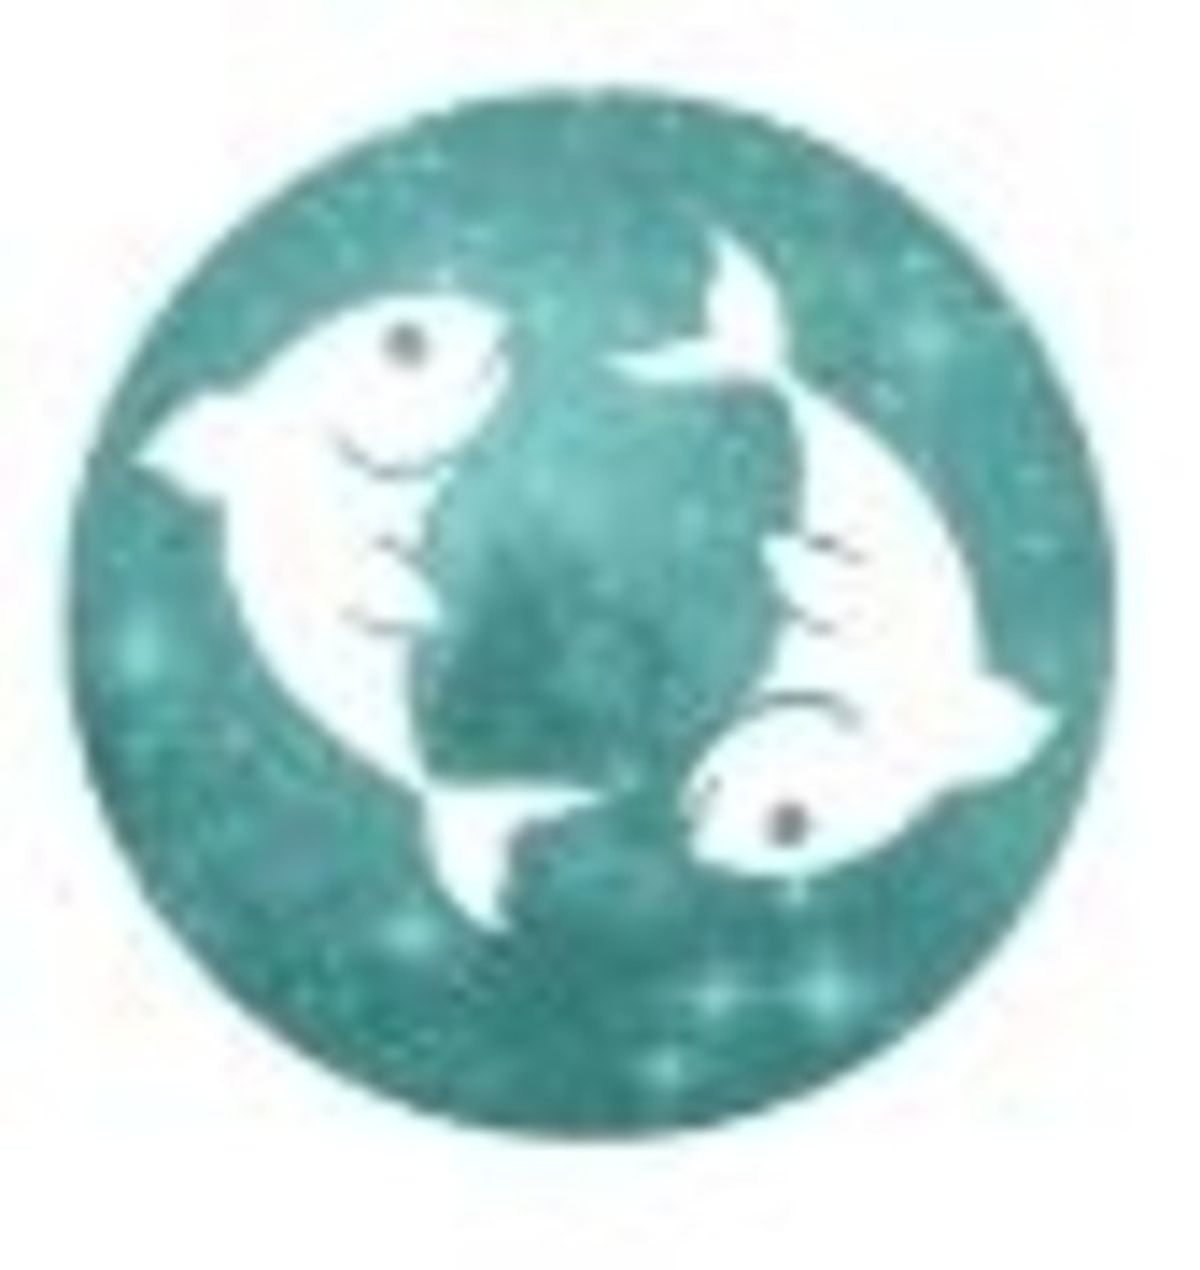 Pisces: The Mutable Water Sign